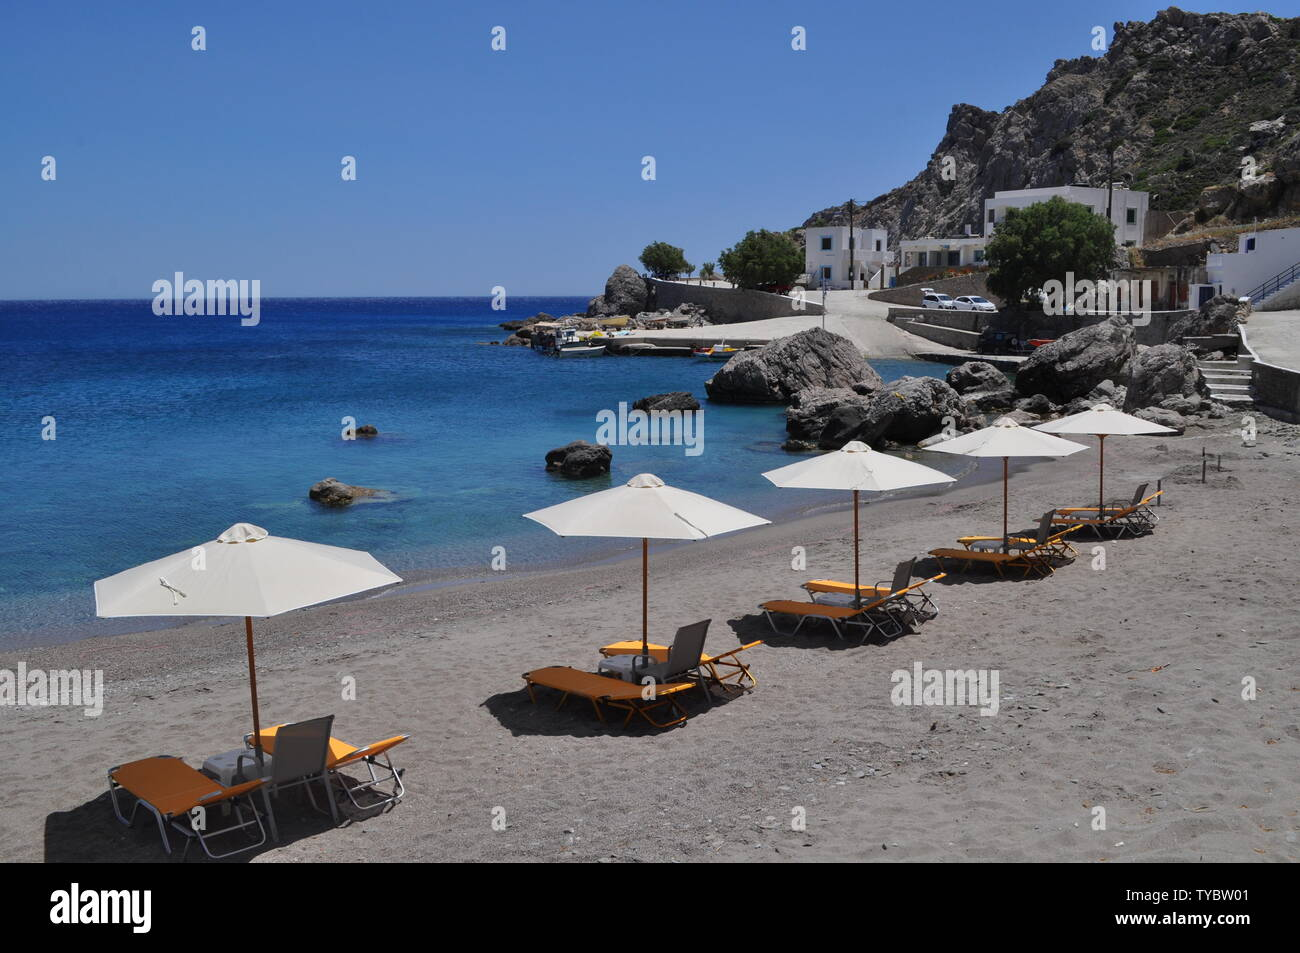 Picture perfect beaches of Karpathos, a small island of Greece in the aegean sea. Stock Photo